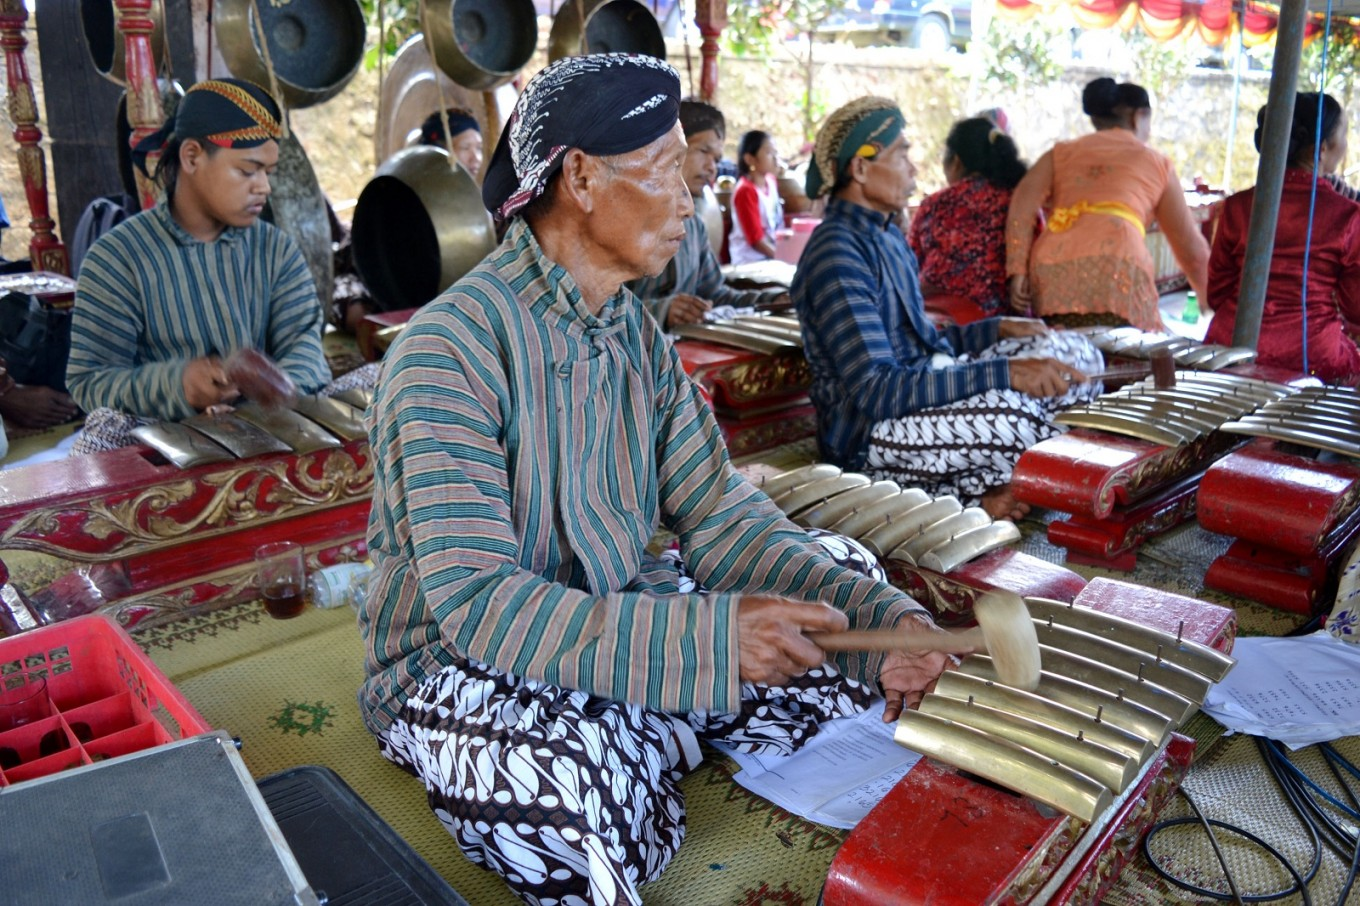 The sound of Javanese gamelan instruments accompanied the melasti procession.